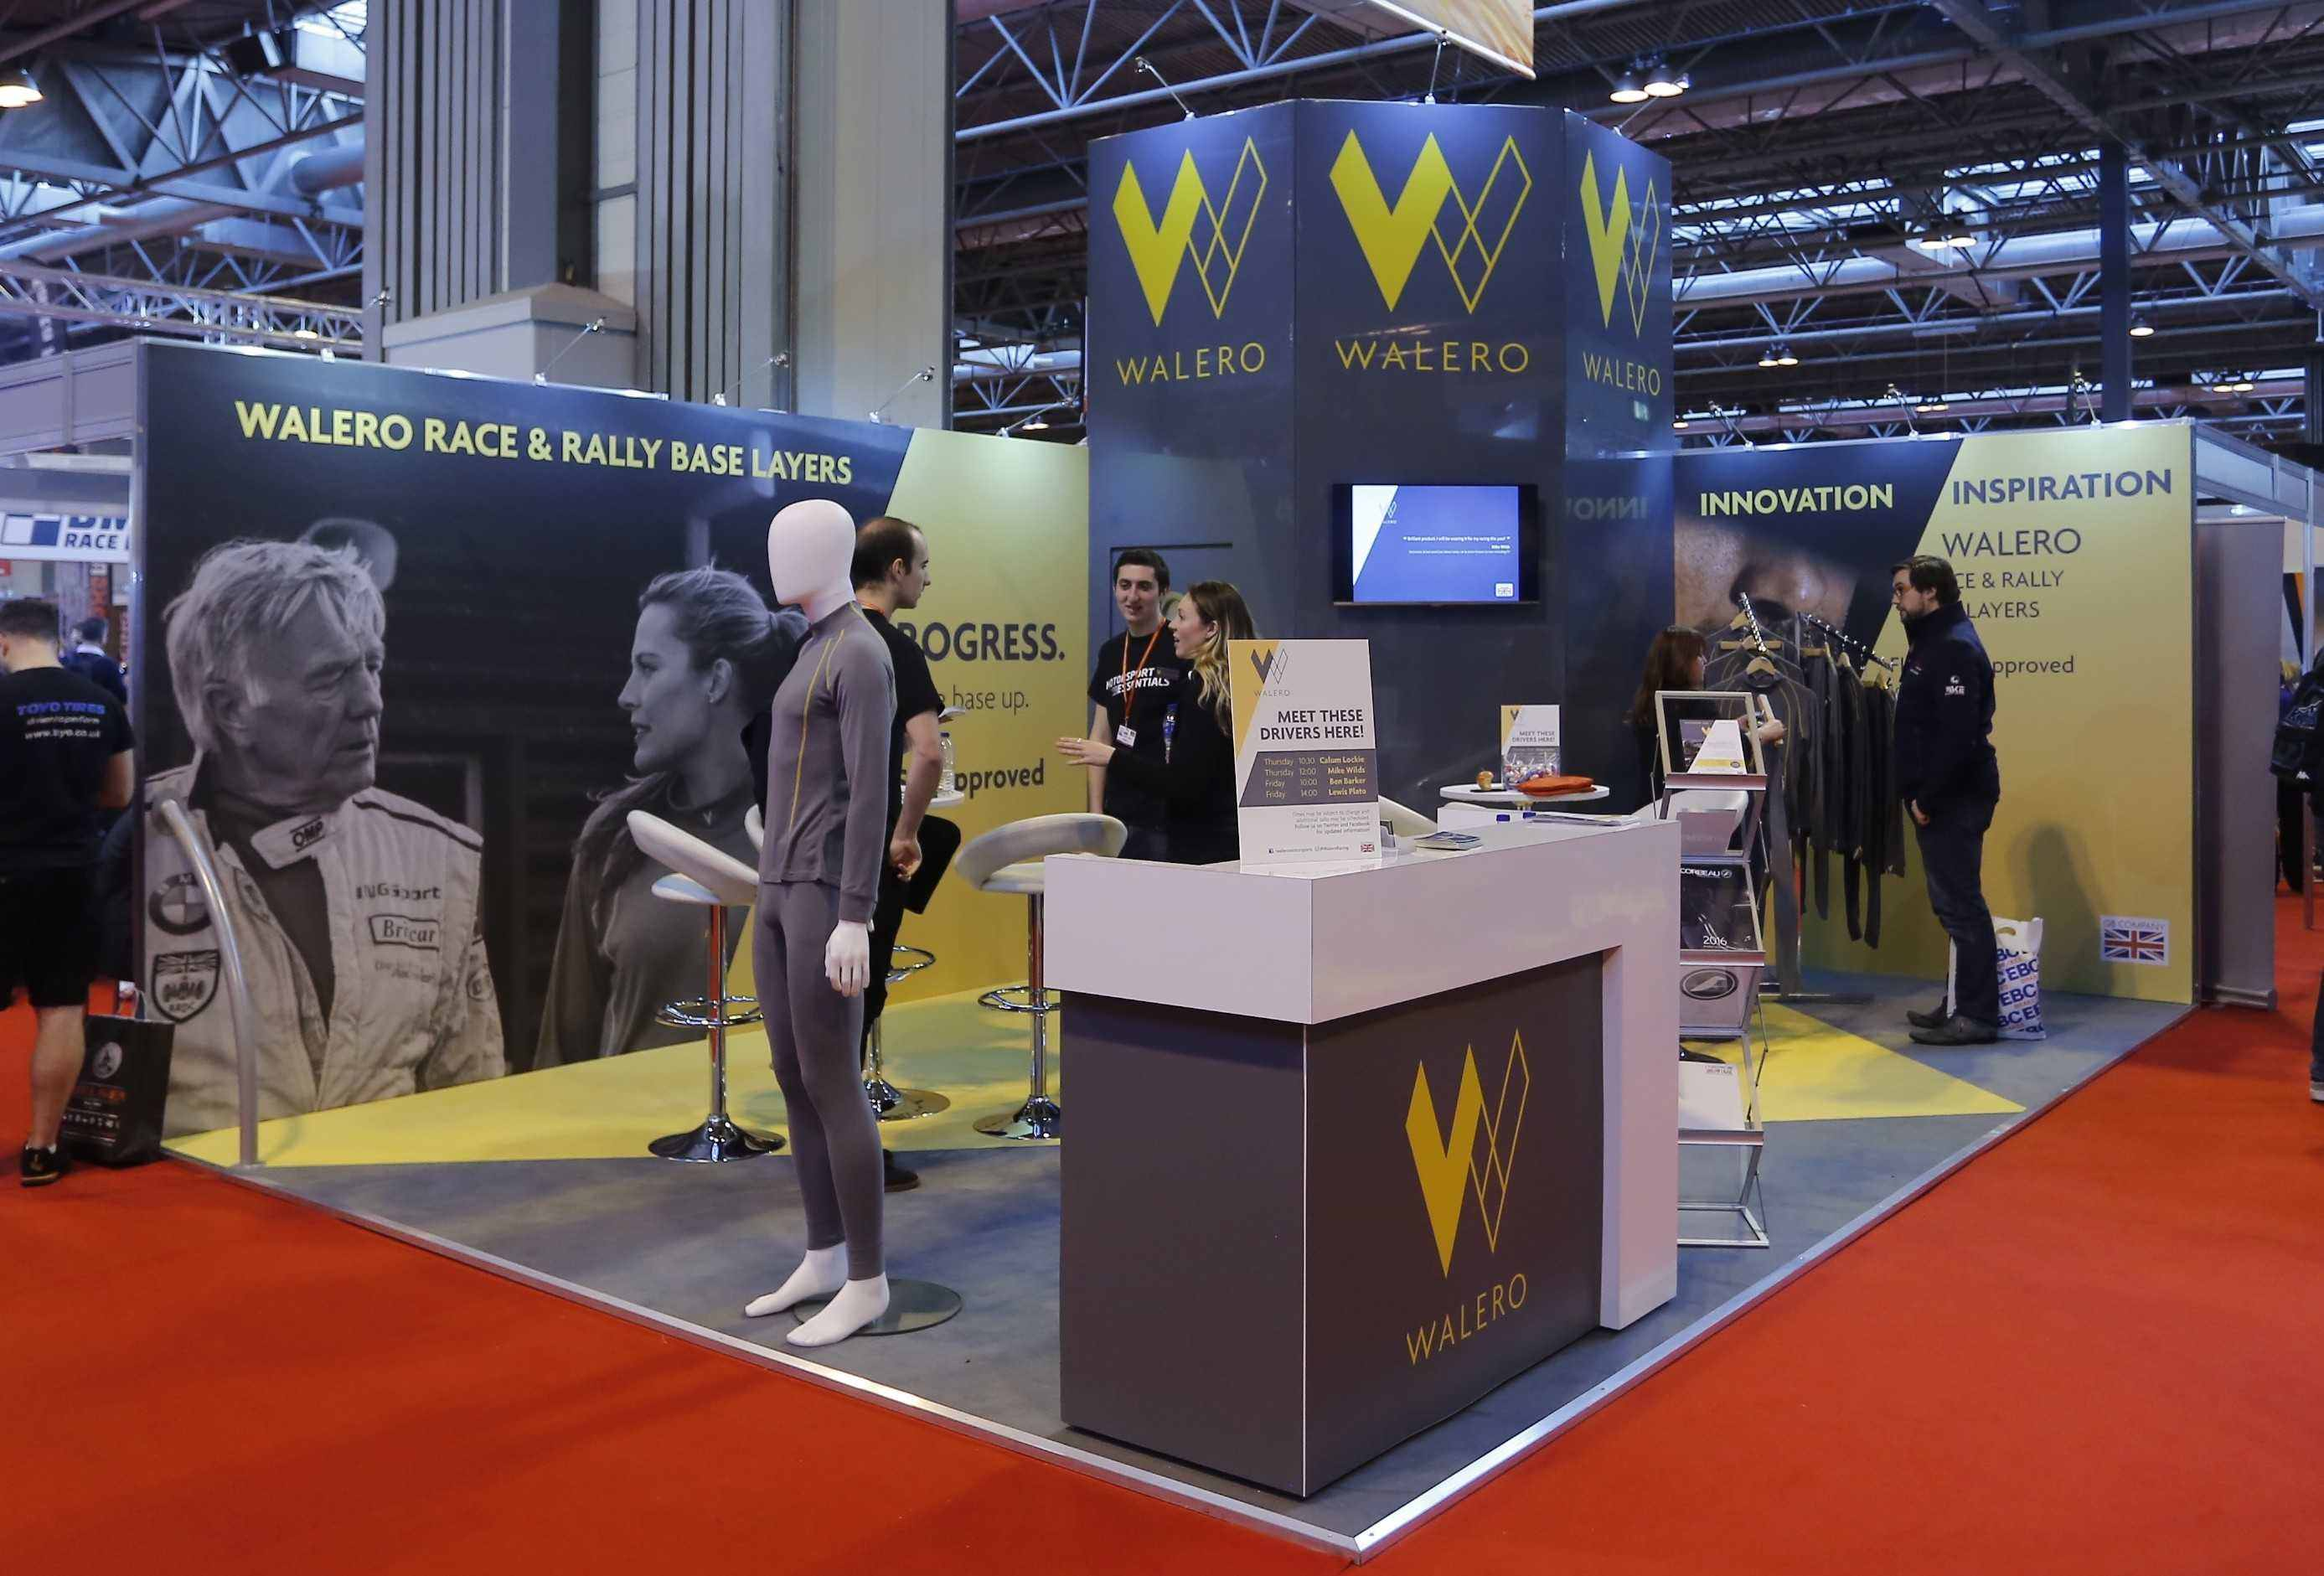 The Walero Stand at Autosport International